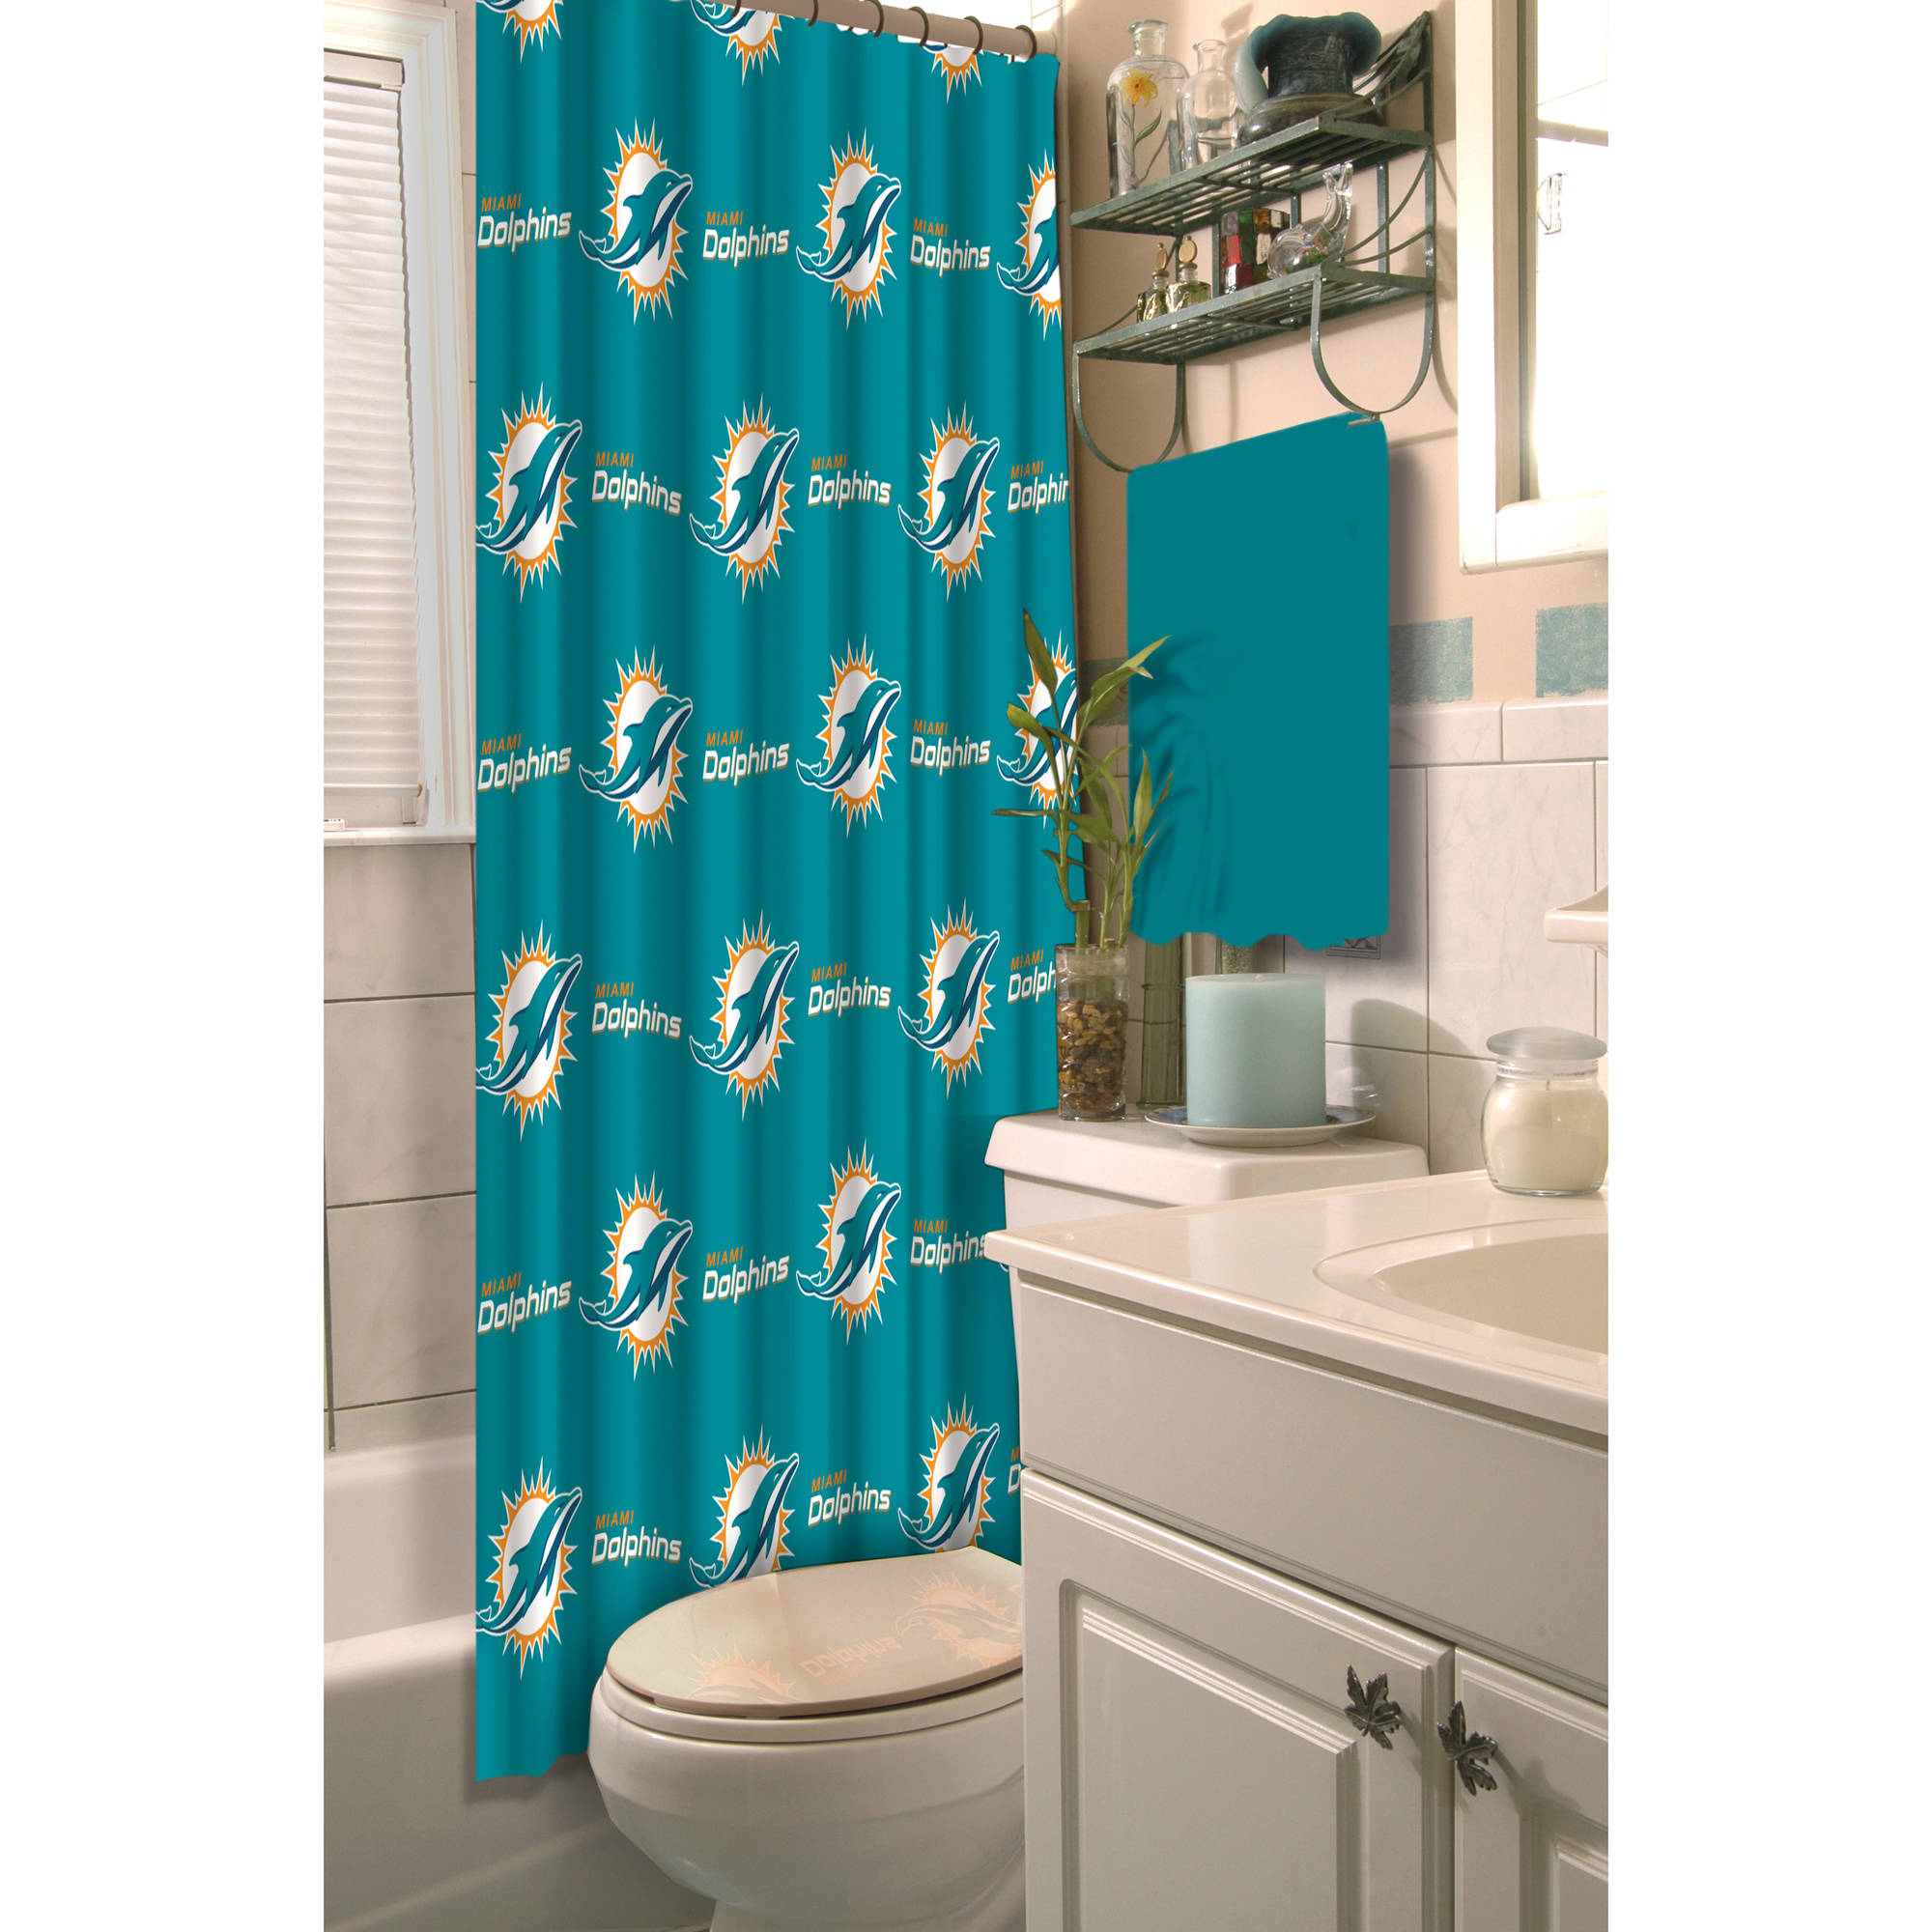 Bathroom Accessories Miami nfl miami dolphins decorative bath collection - shower curtain